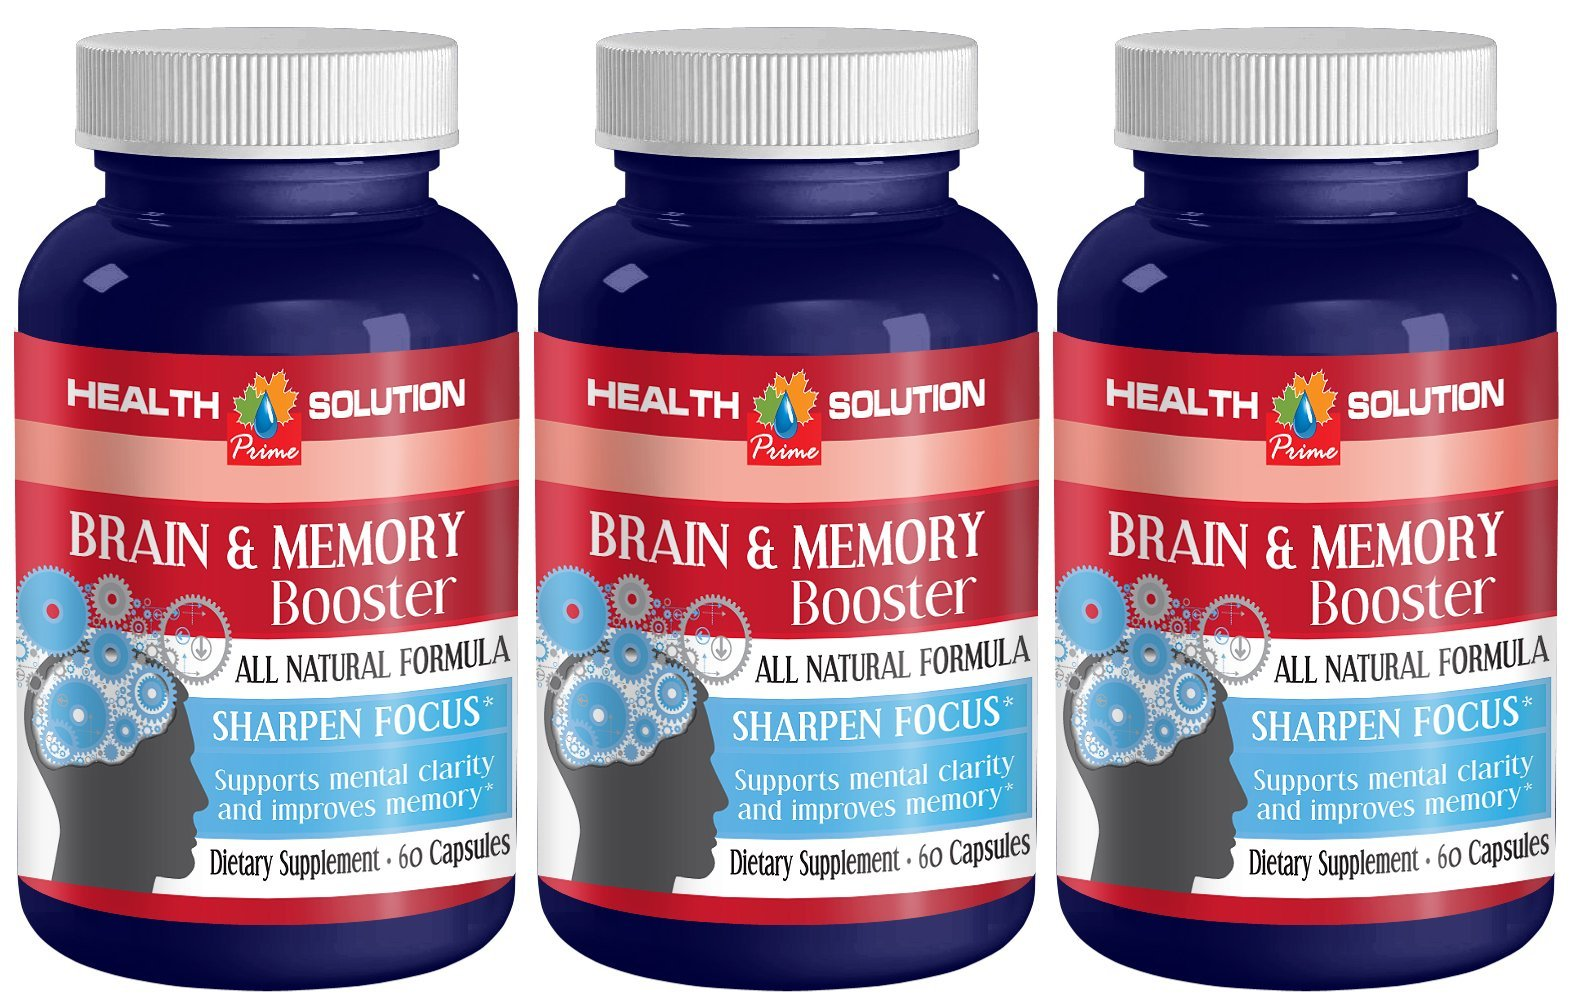 St john wort extract - BRAIN AND MEMORY BOOSTER - support cognitive performance (3 bottles) by Health Solution Prime